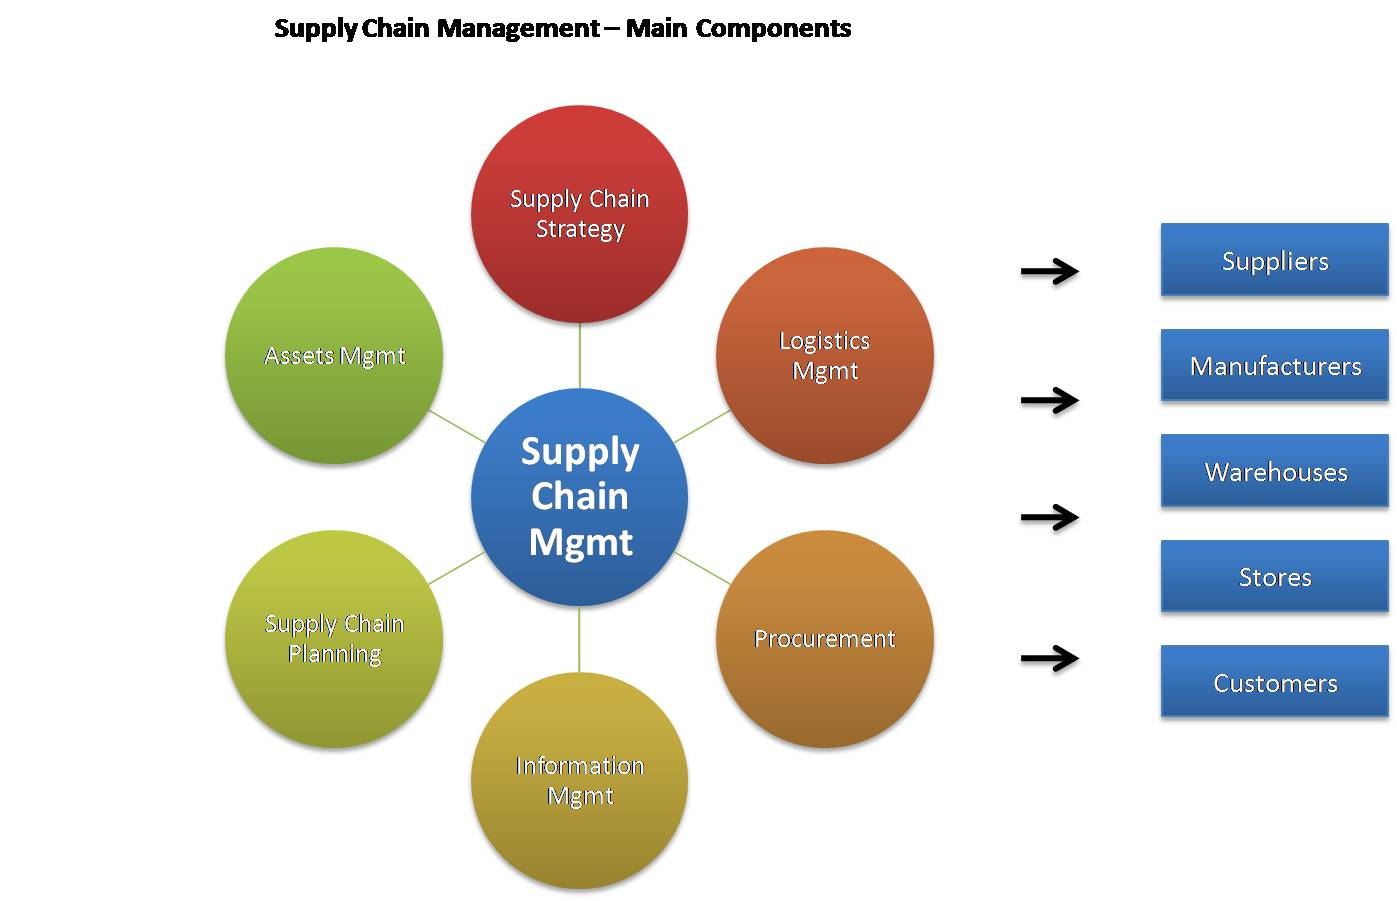 supply chain managemnt The scm journal list ranking is an annual ranking of universities' supply chain management research output, based on the leading scm journals.